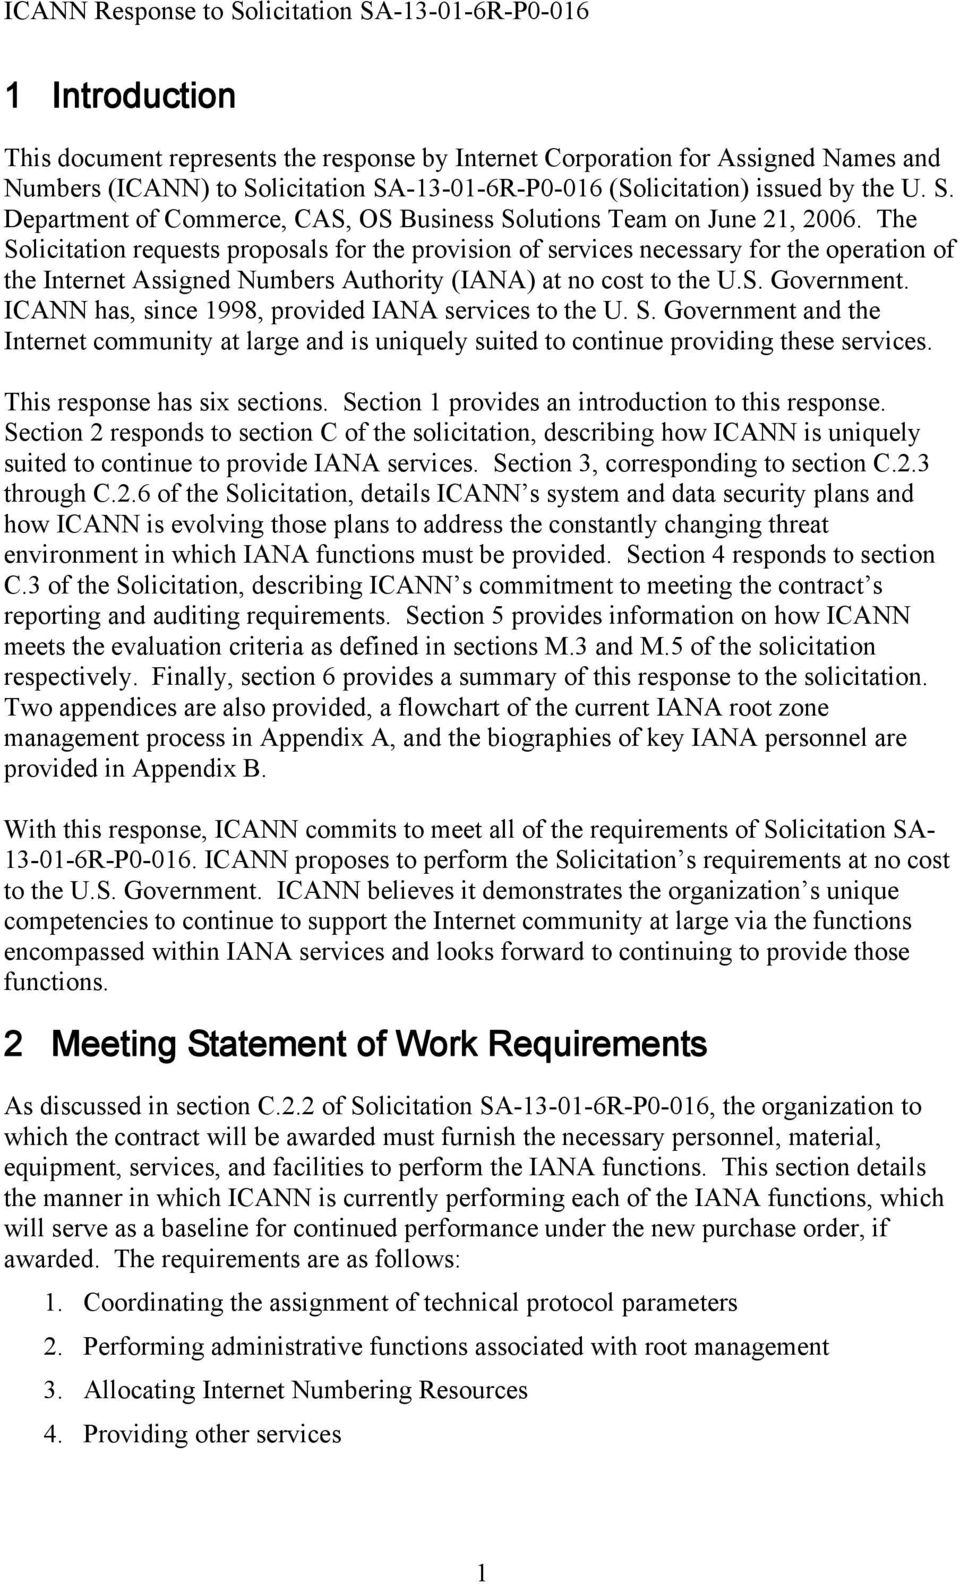 ICANN has, since 1998, provided IANA services to the U. S. Government and the Internet community at large and is uniquely suited to continue providing these services. This response has six sections.